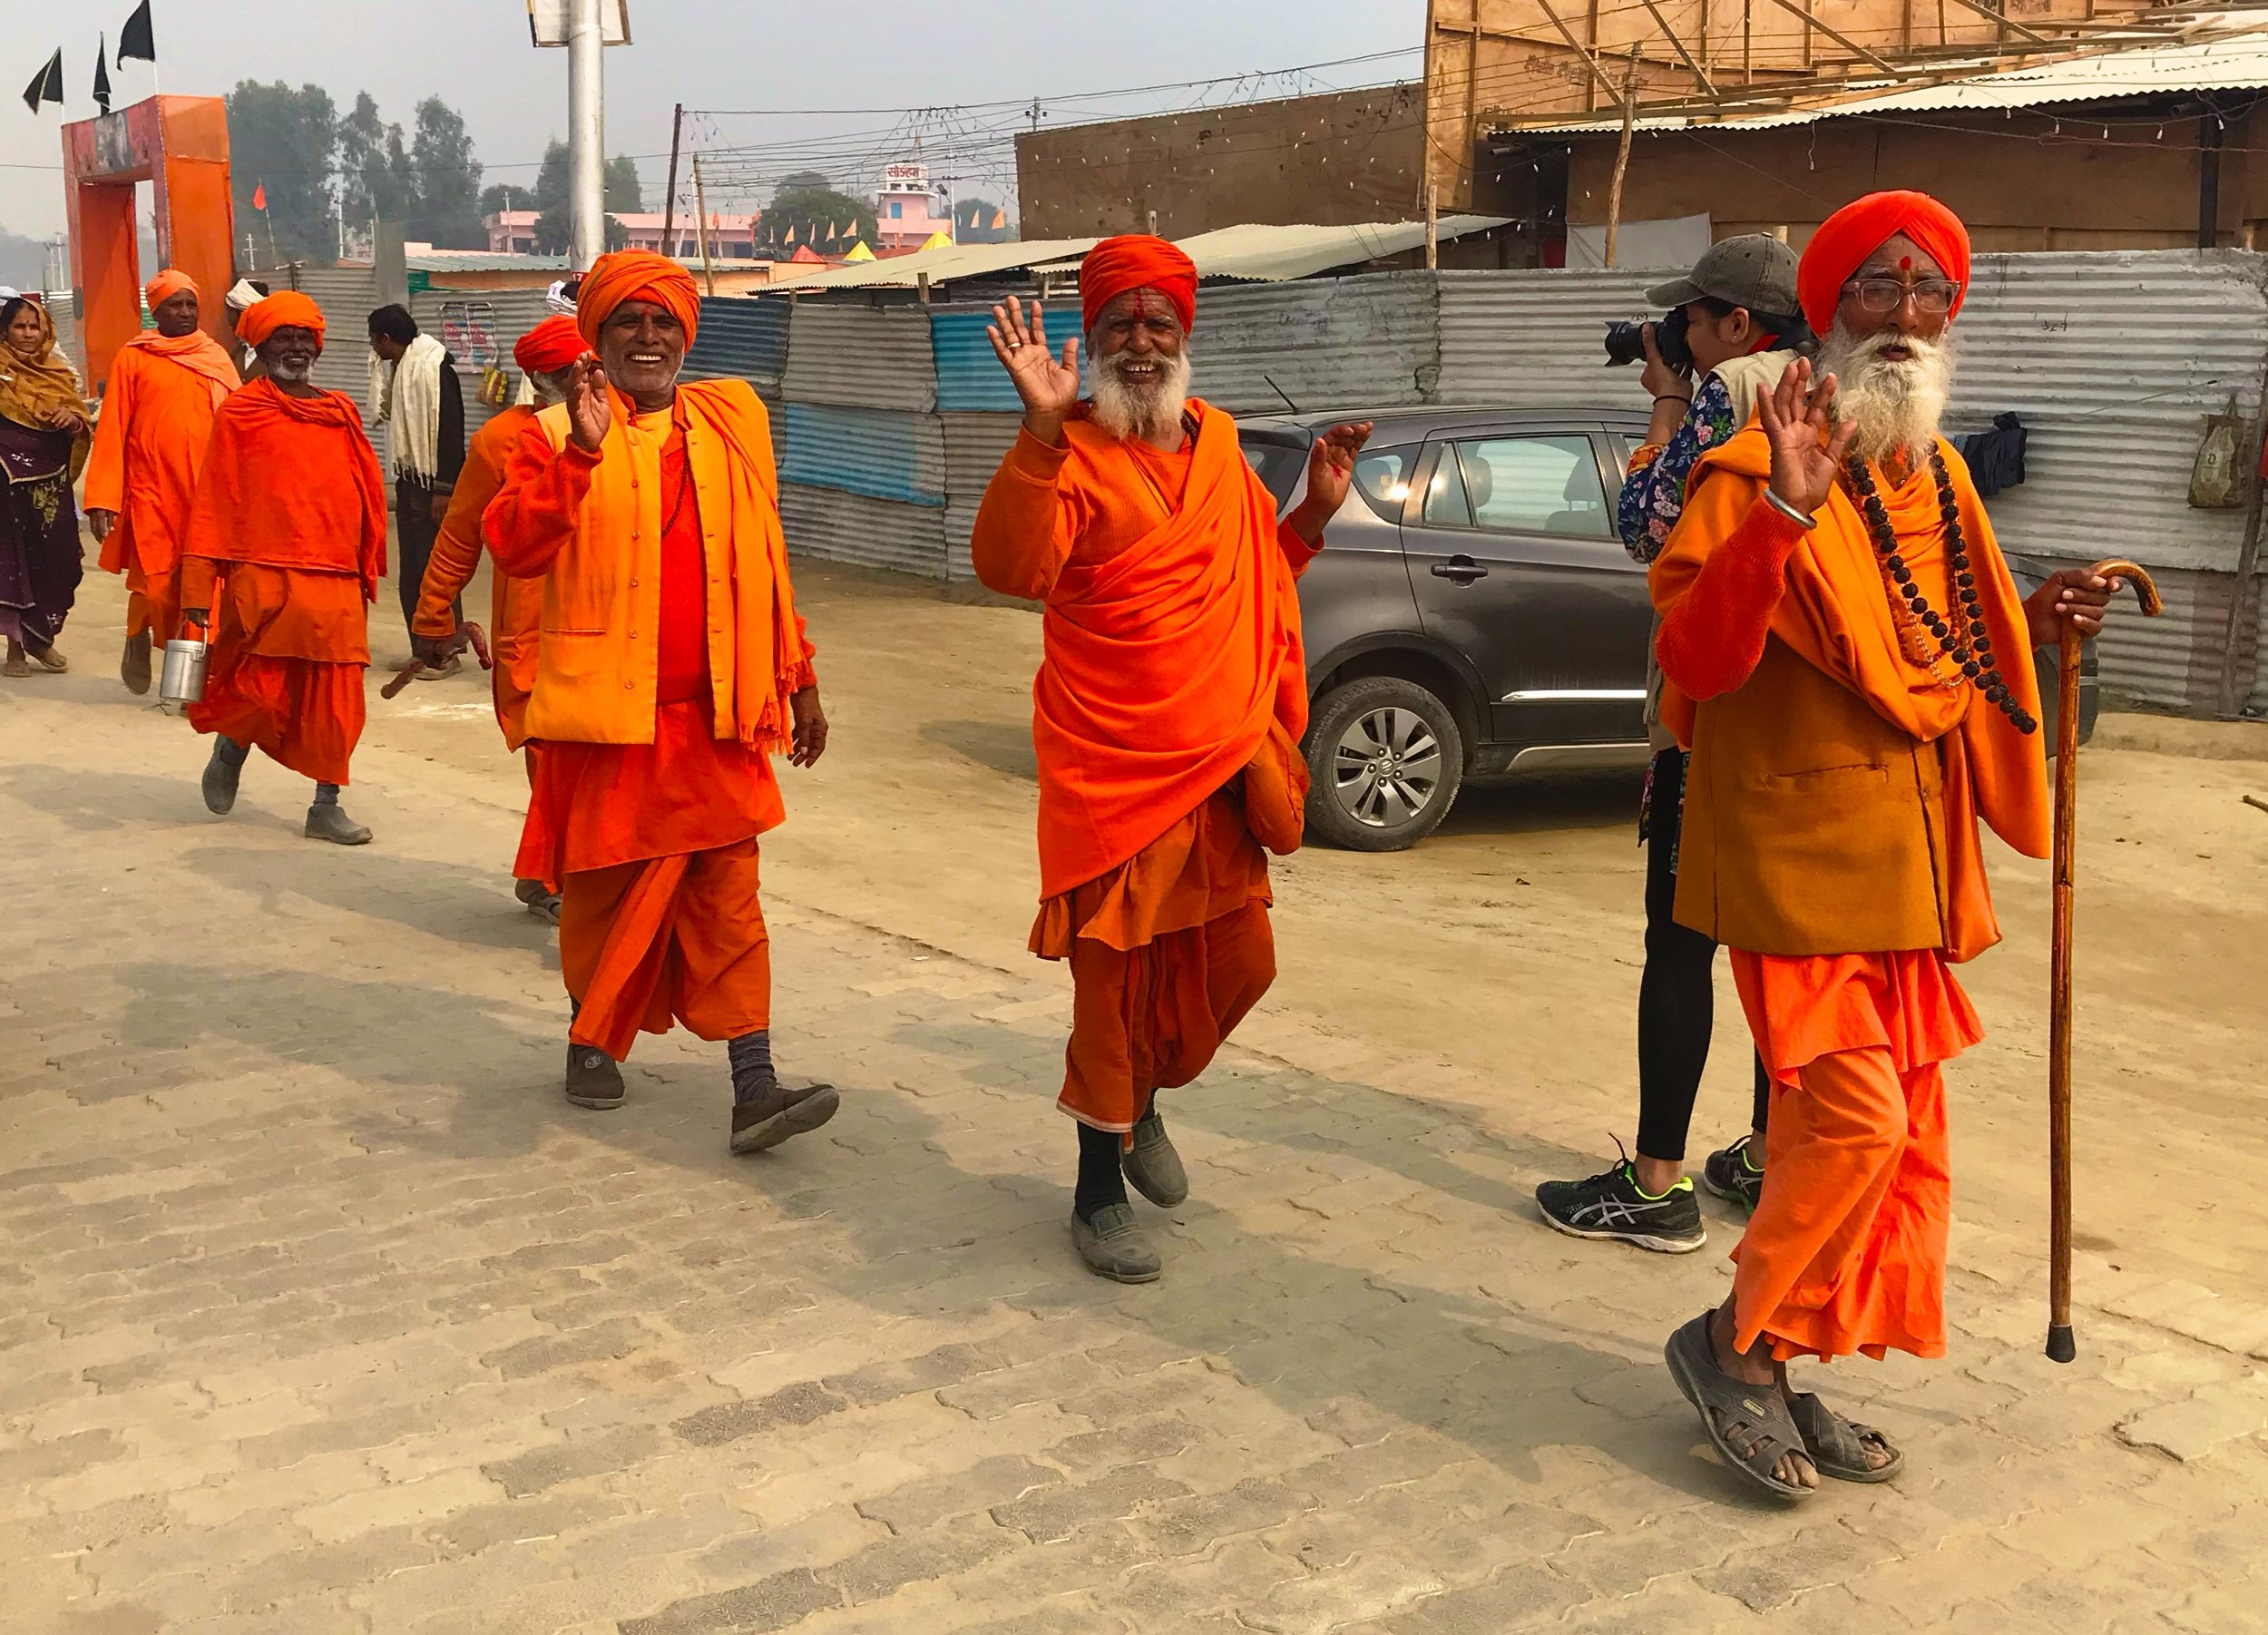 Entering the Kumbha Mela Festival, Sadhus everywhere